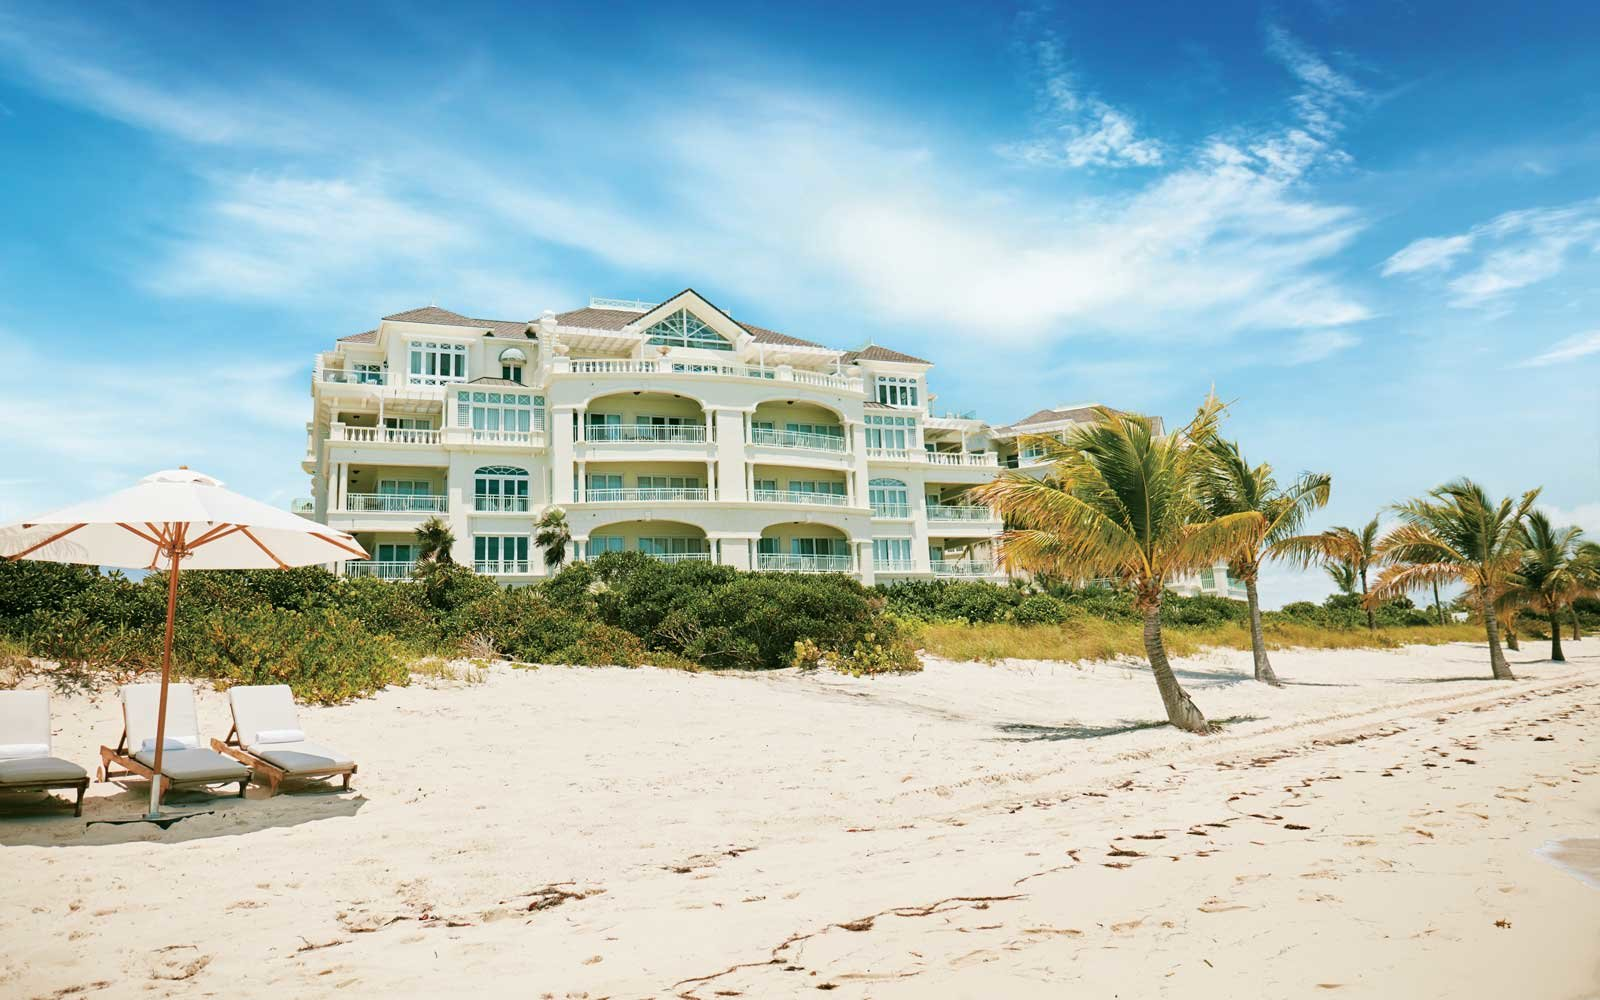 Travel + Leisure's Best Hotels in the Caribbean. Pictured; The Shore Club Turks and Caicos